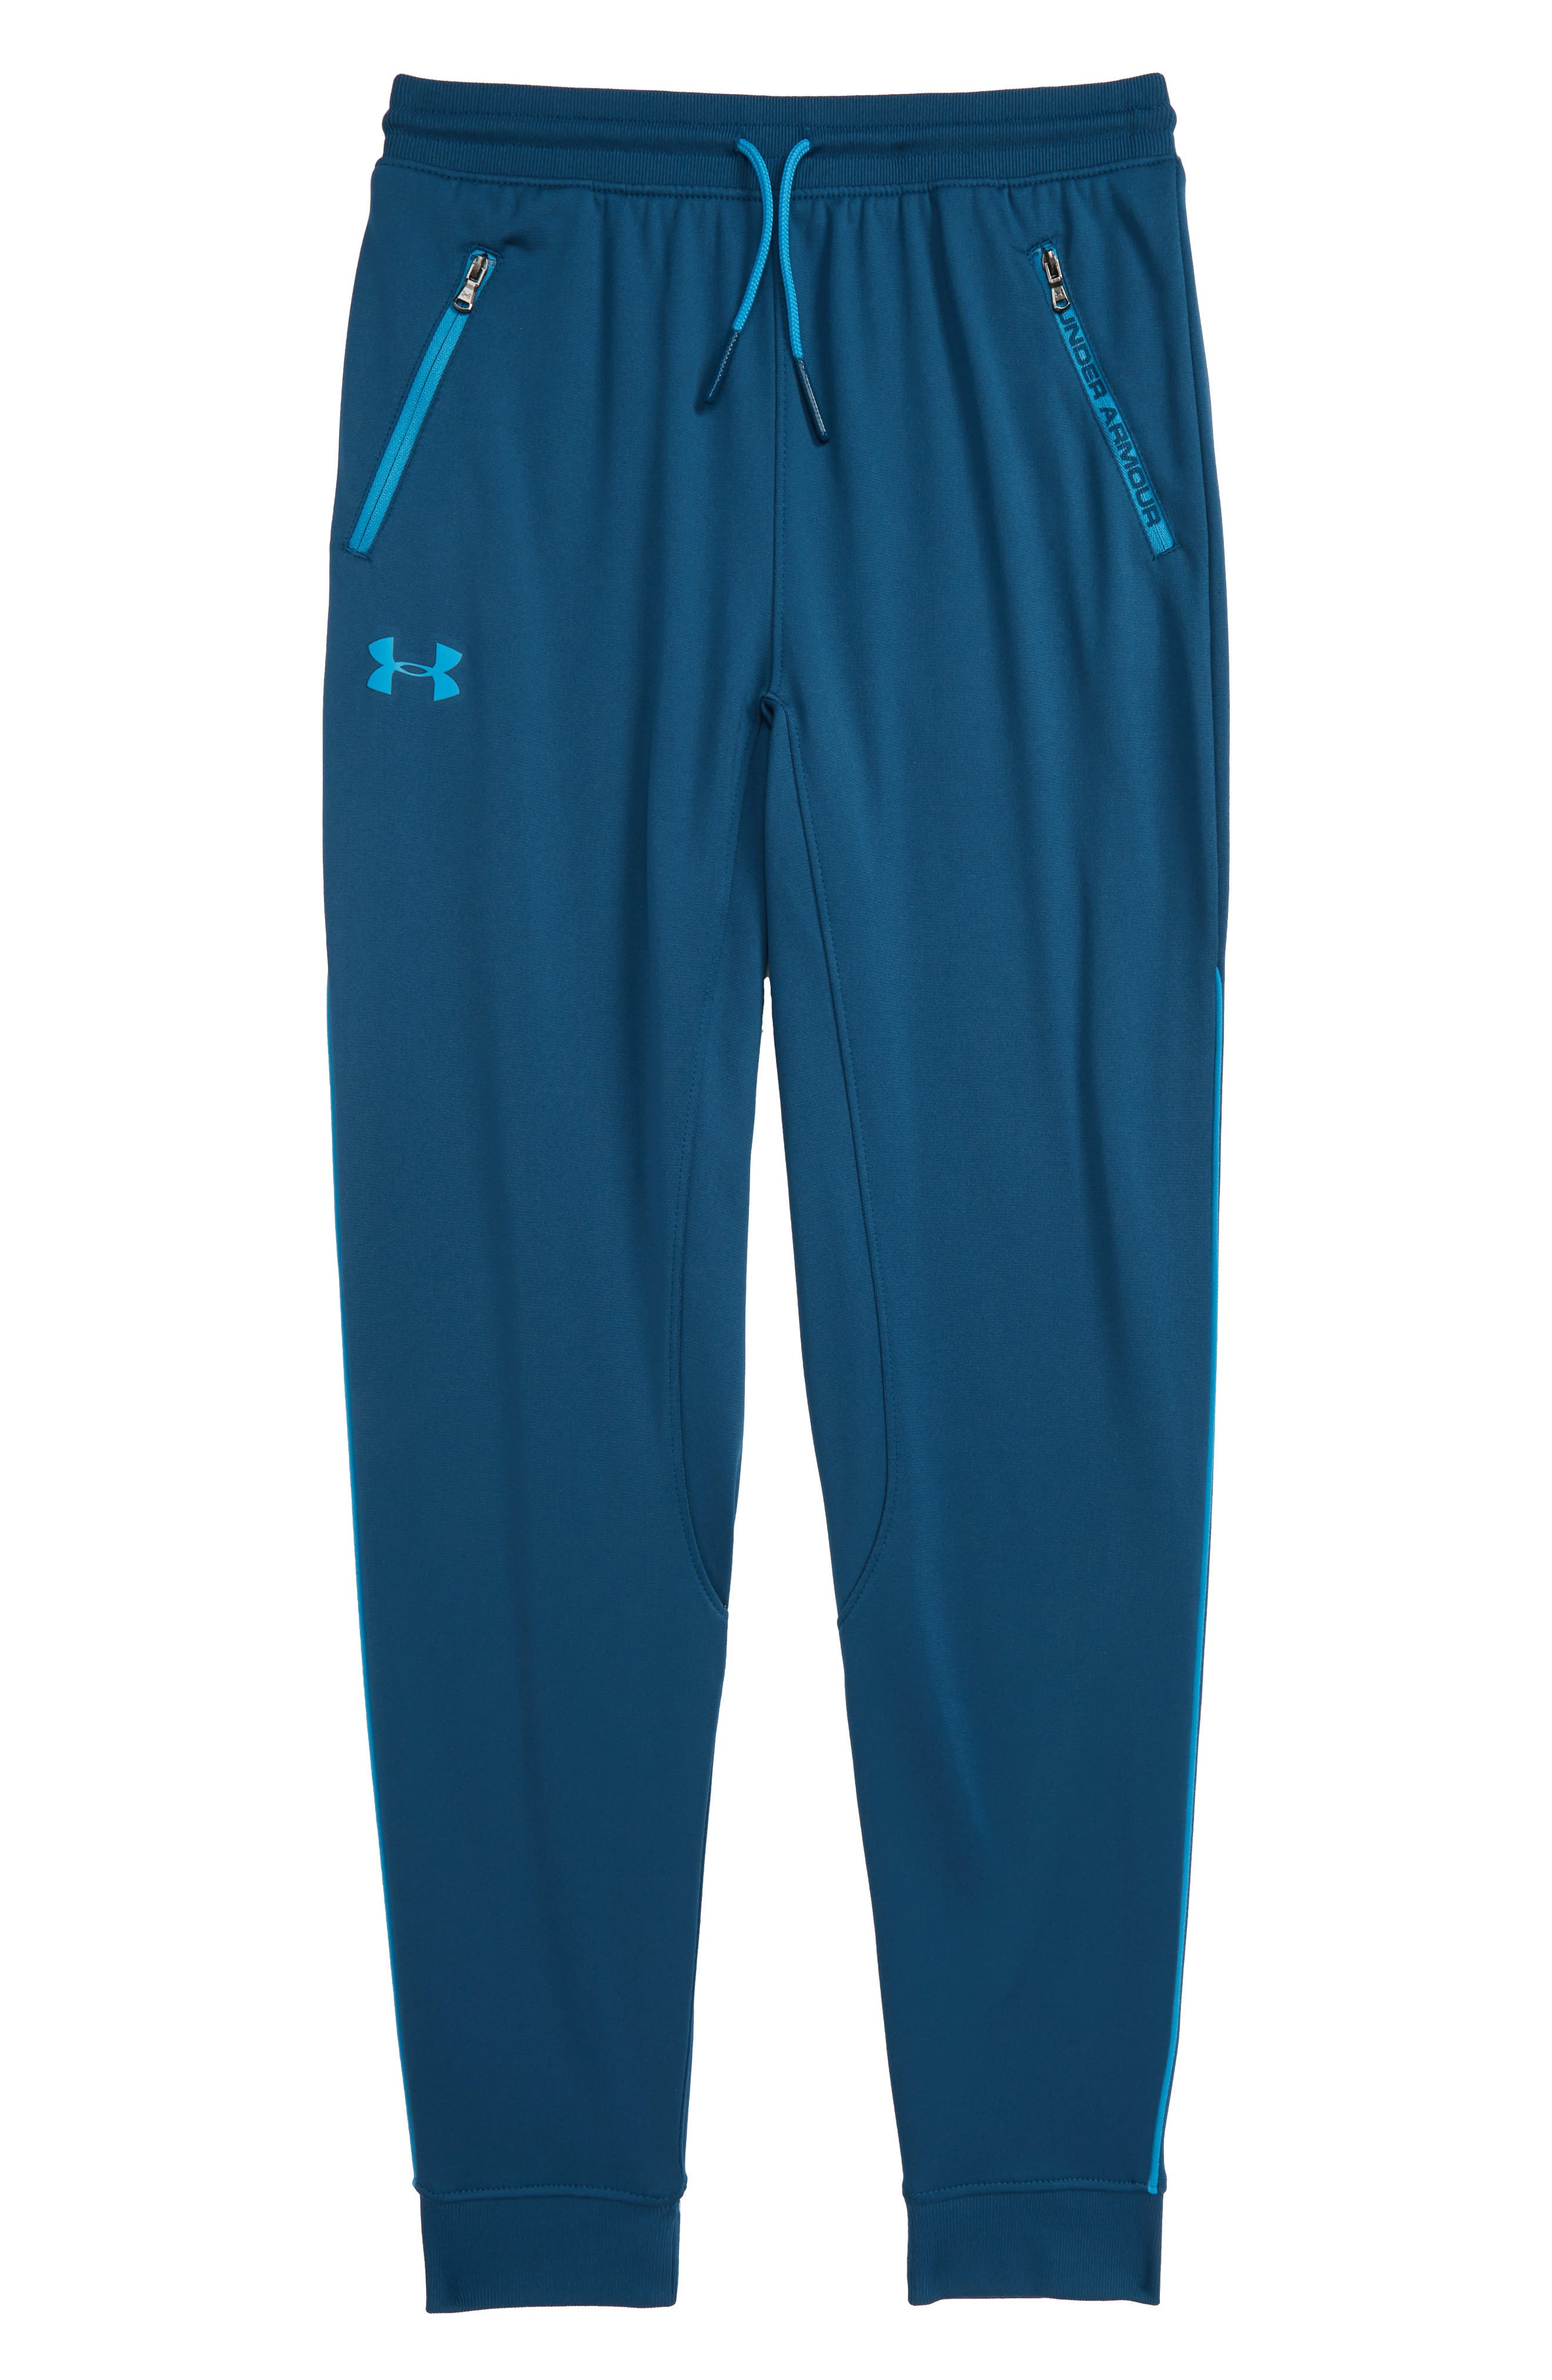 UNDER ARMOUR Pennant Tapered Sweatpants, Main, color, PETROL BLUE/ ETHER BLUE